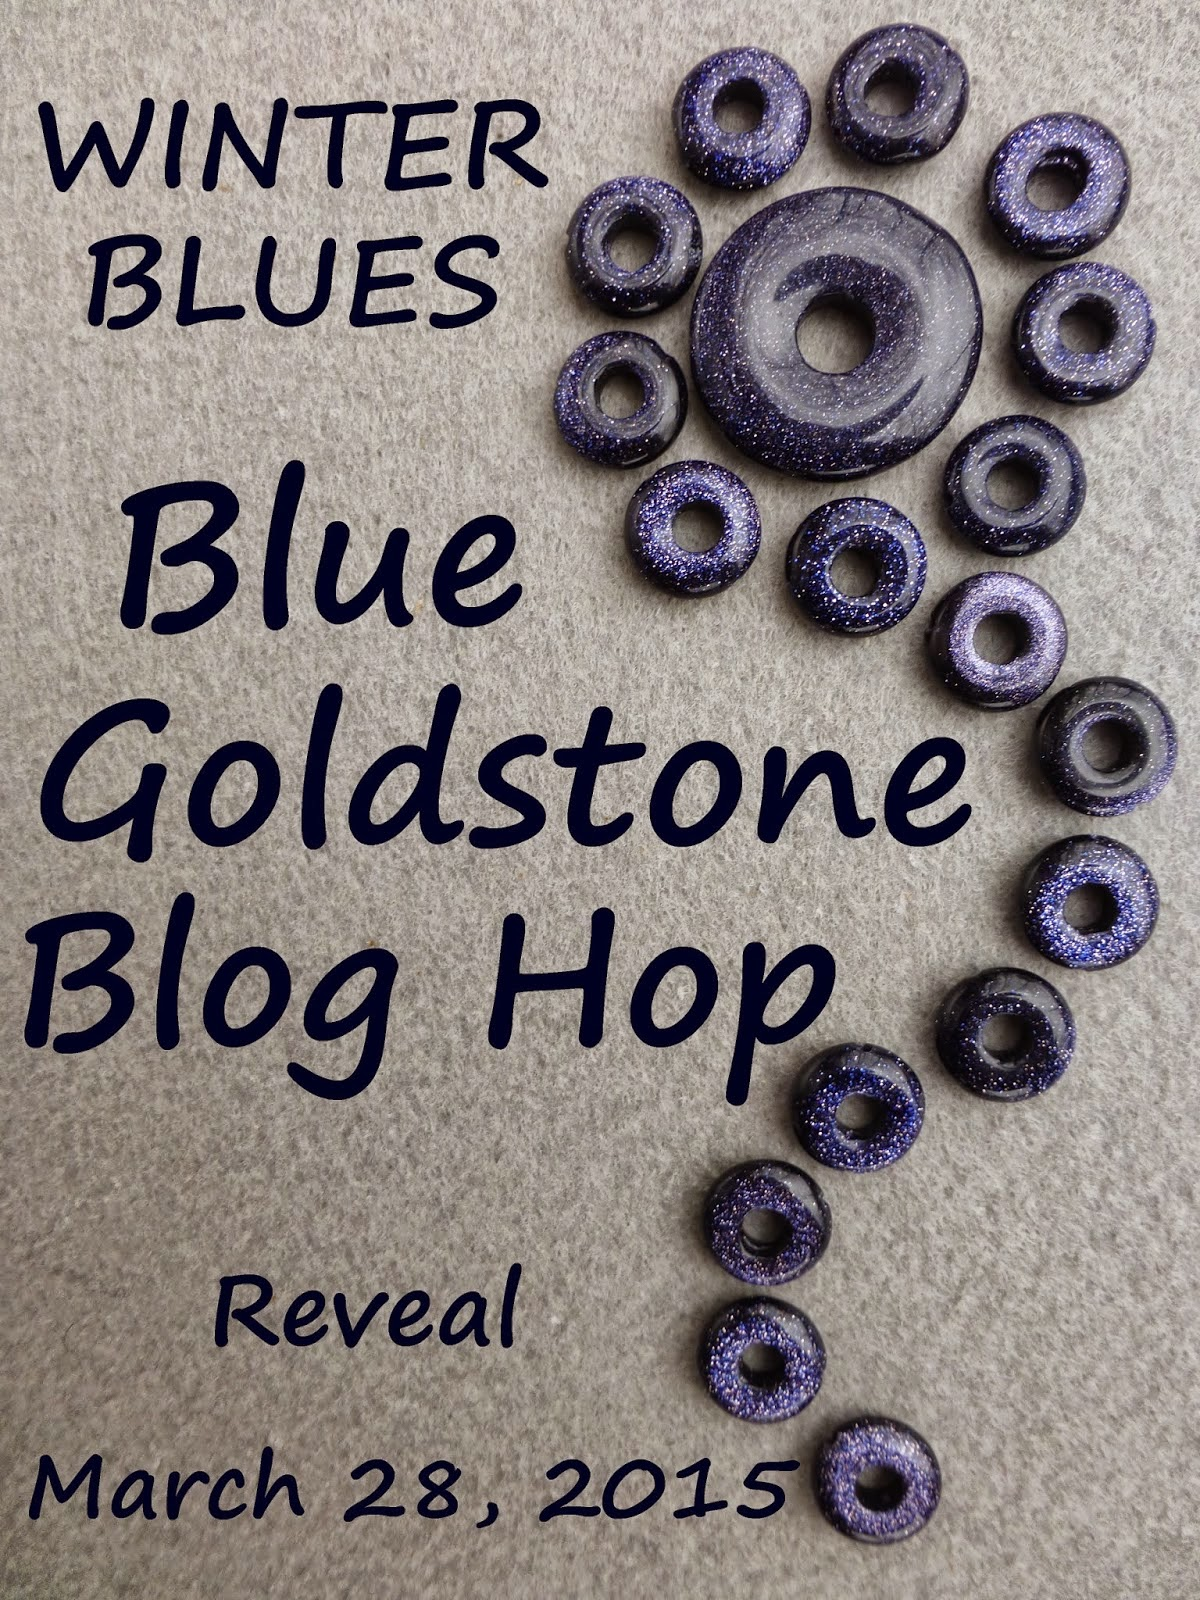 Winter Blues Blue Goldstone Blog Hop